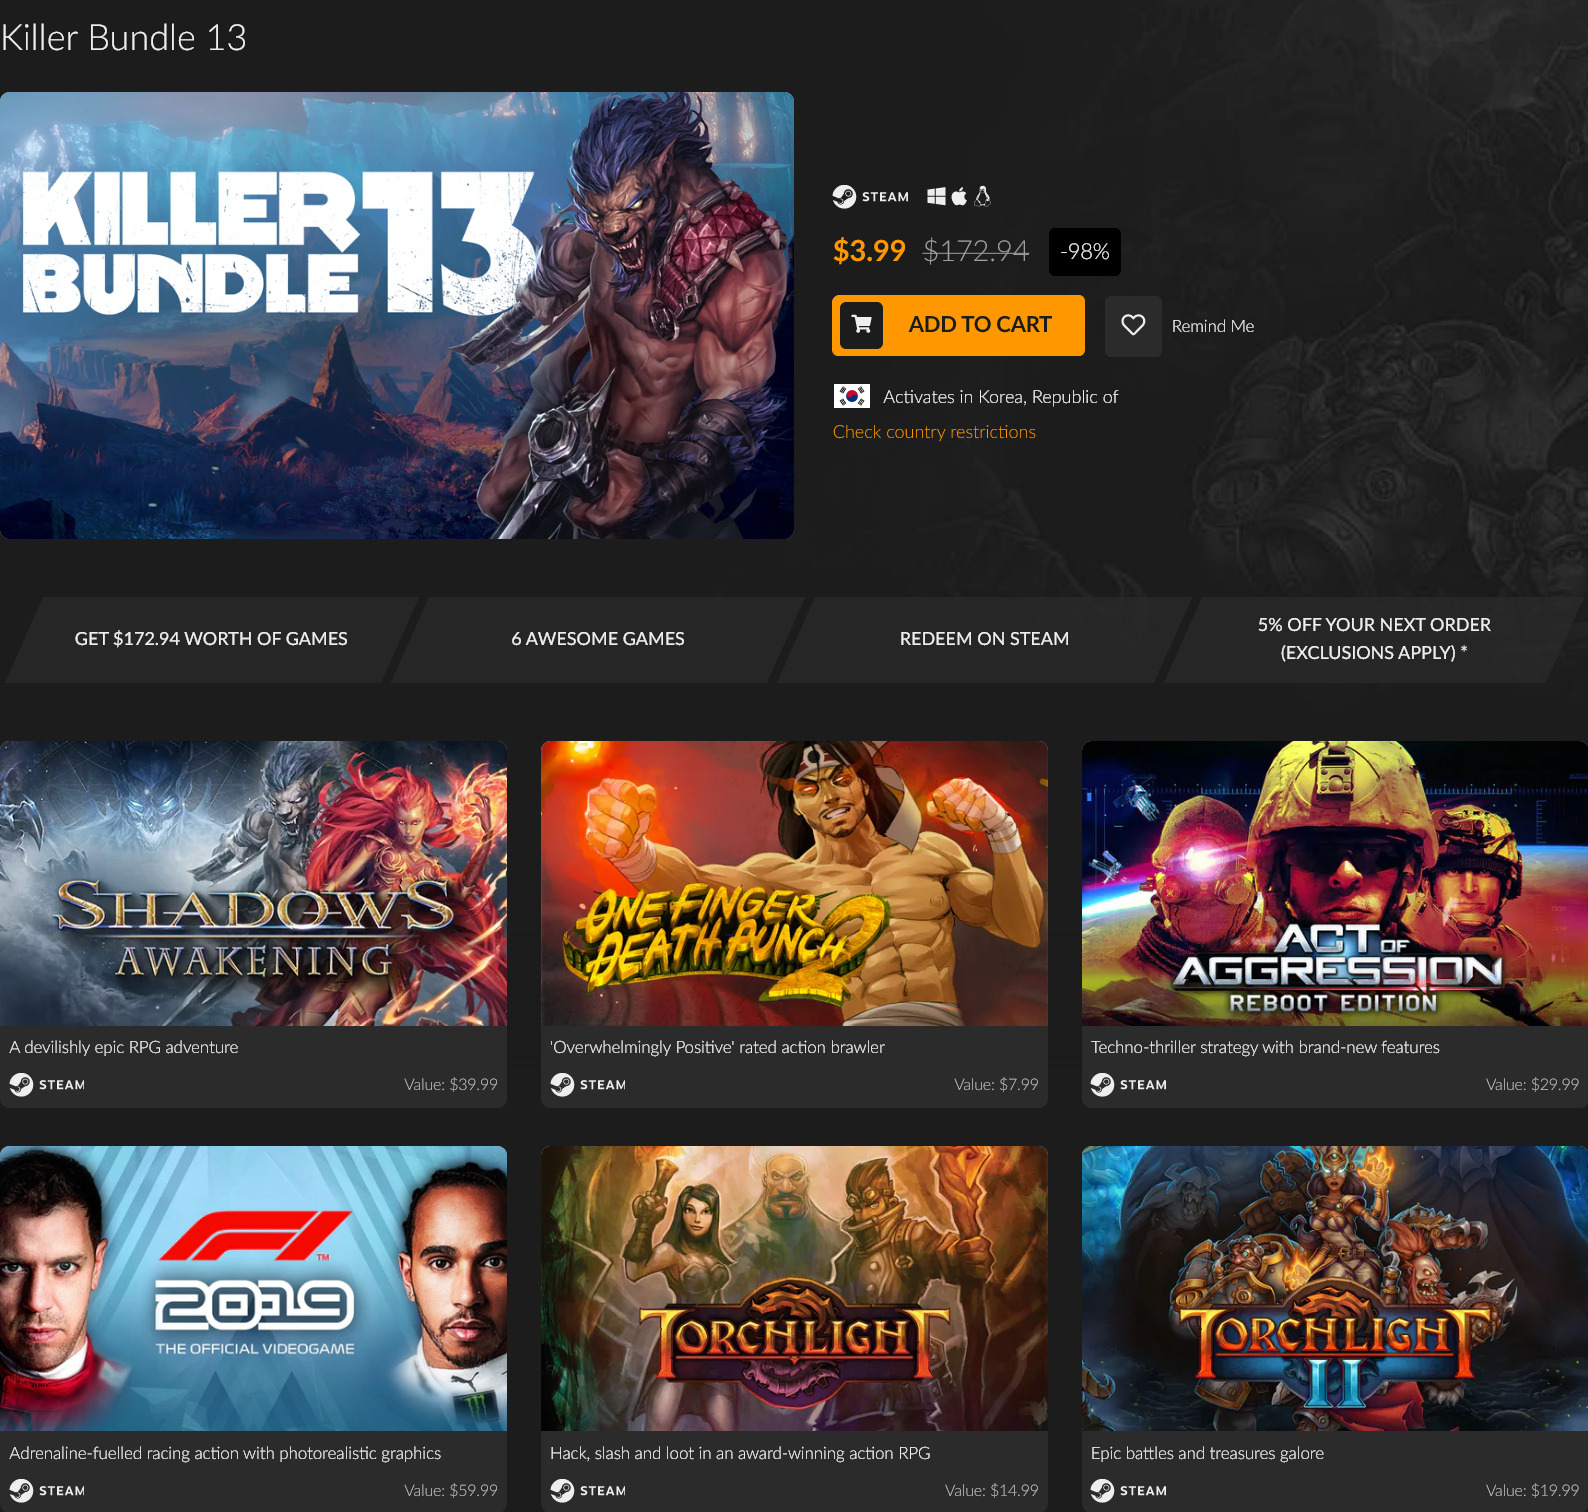 Screenshot_2020-09-15 Killer Bundle 13 Steam Game Bundle Fanatical.jpg